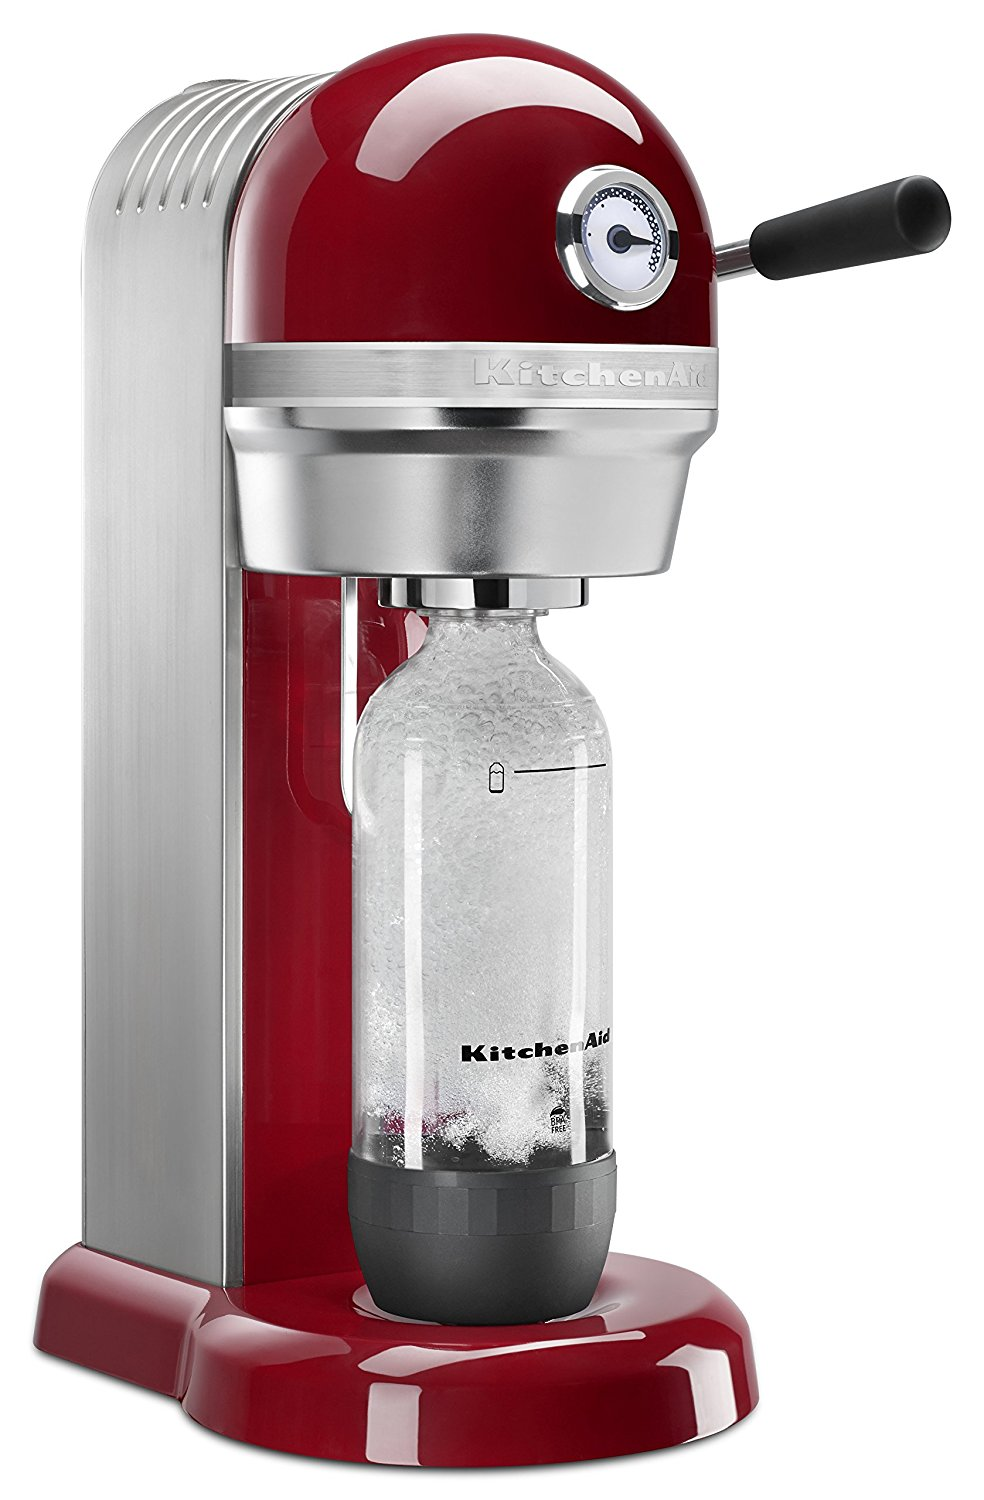 carbonated drink maker machine